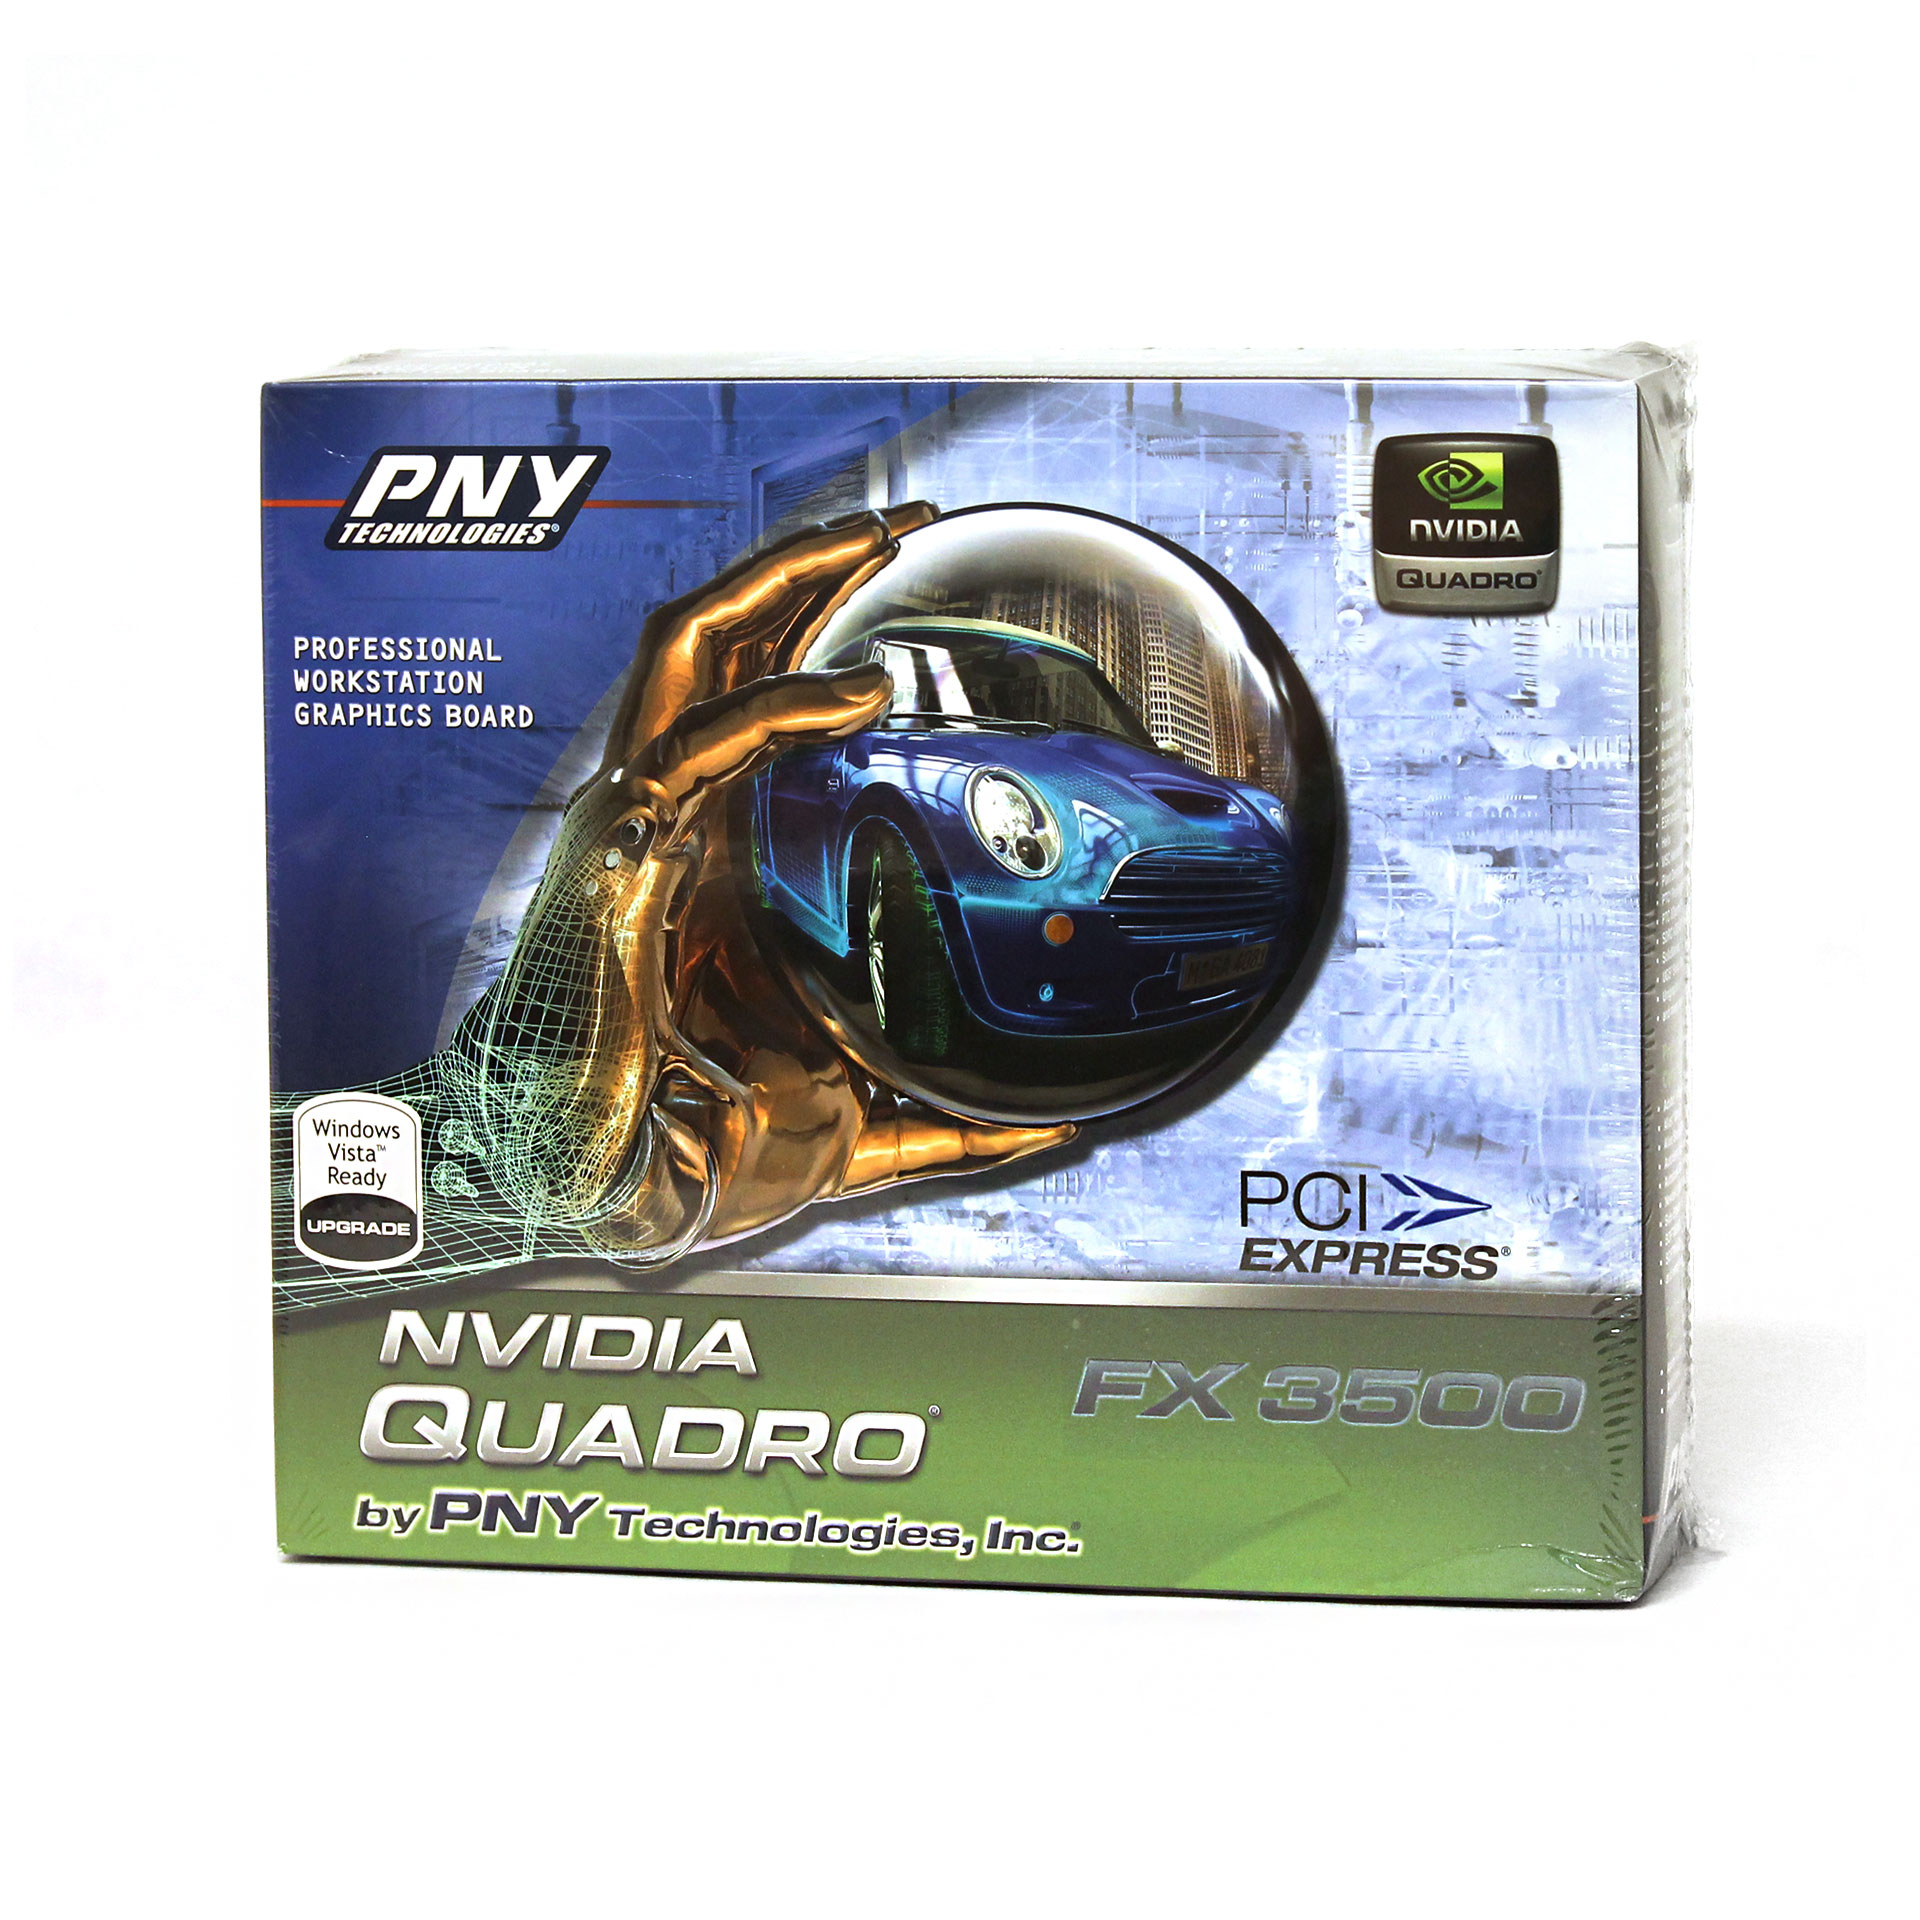 PNY Nvidia Quadro FX 3500 PCIe x16 256MB Dual DVI Video Card